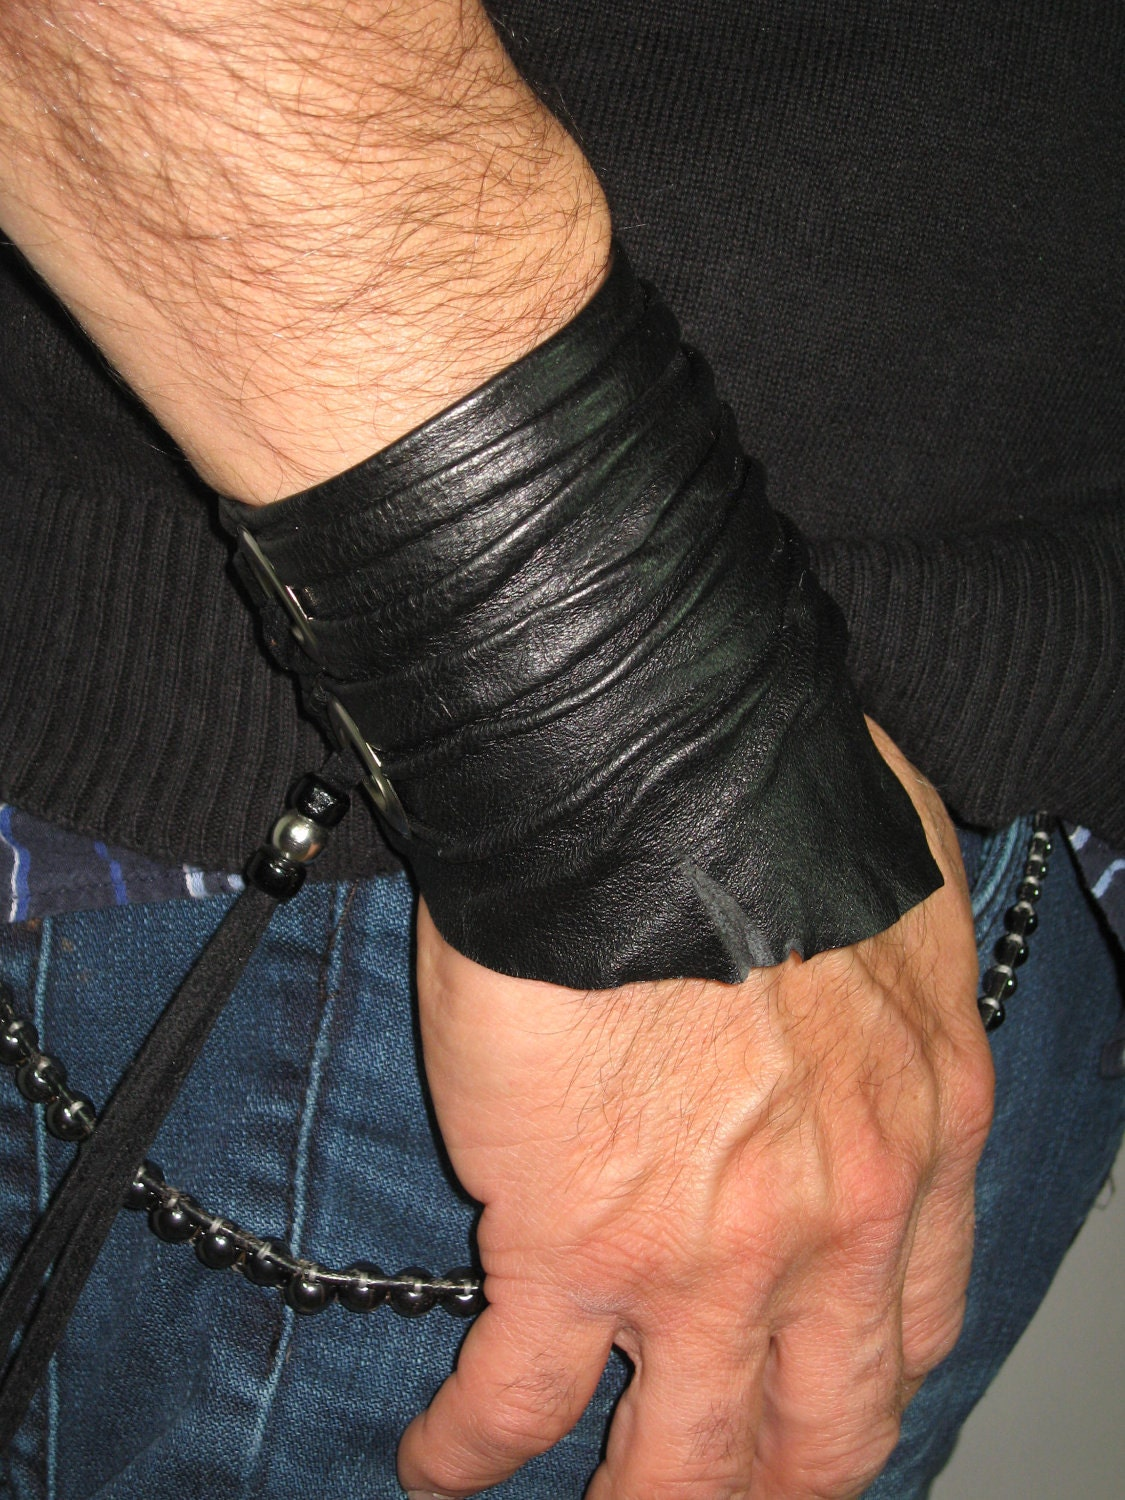 Sculpted Mens Leather Cuff Bracelet Leather Wrist Band